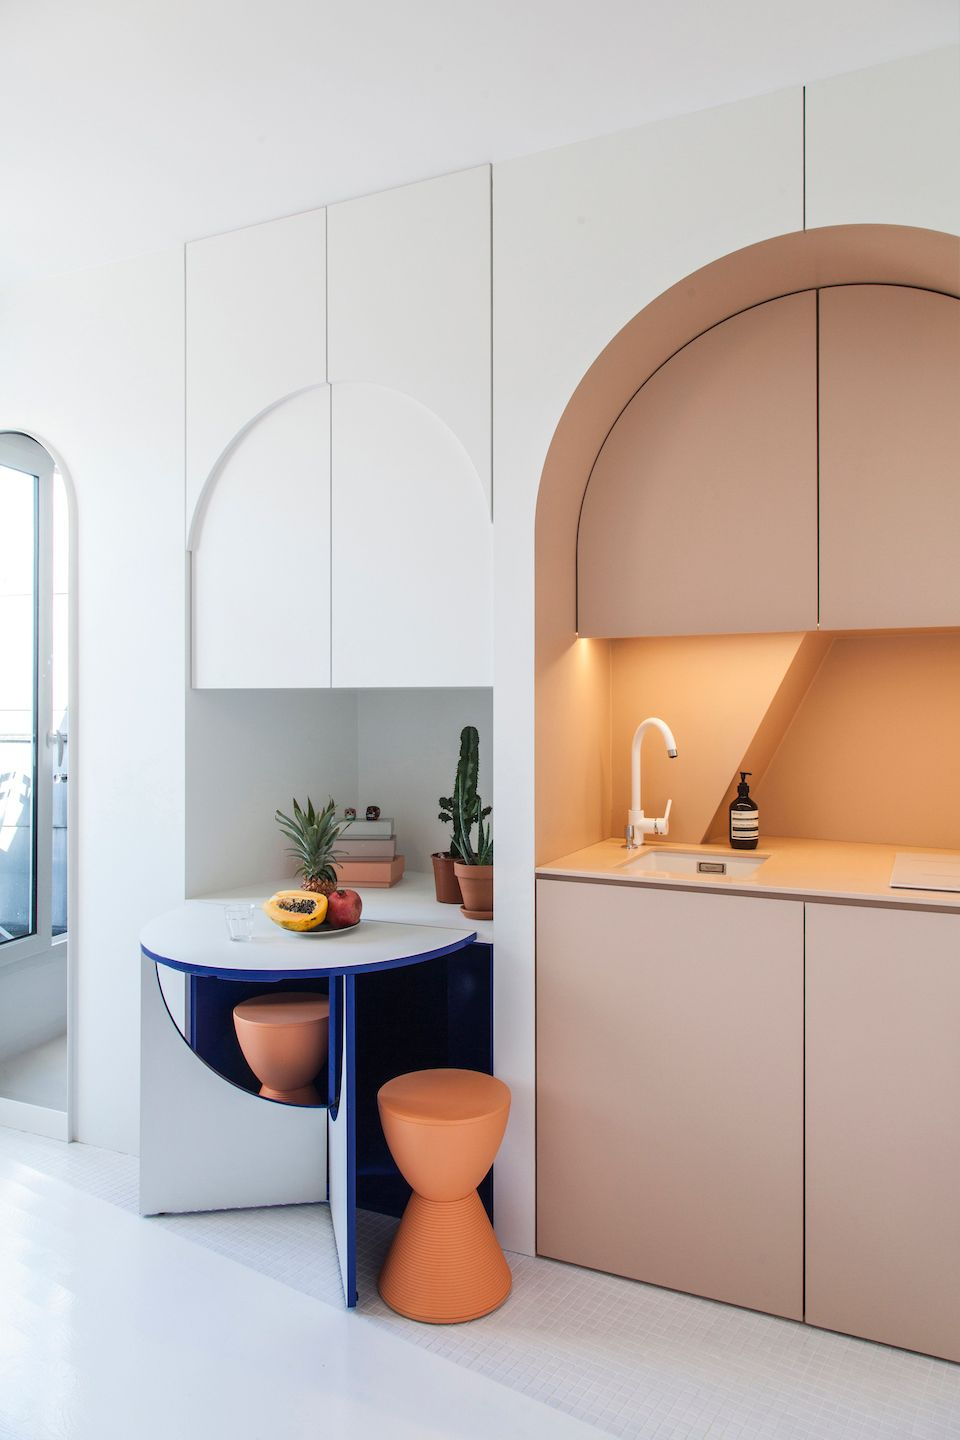 11m² Micro Apartment in Paris by Batiik Studio | Pinterest ...